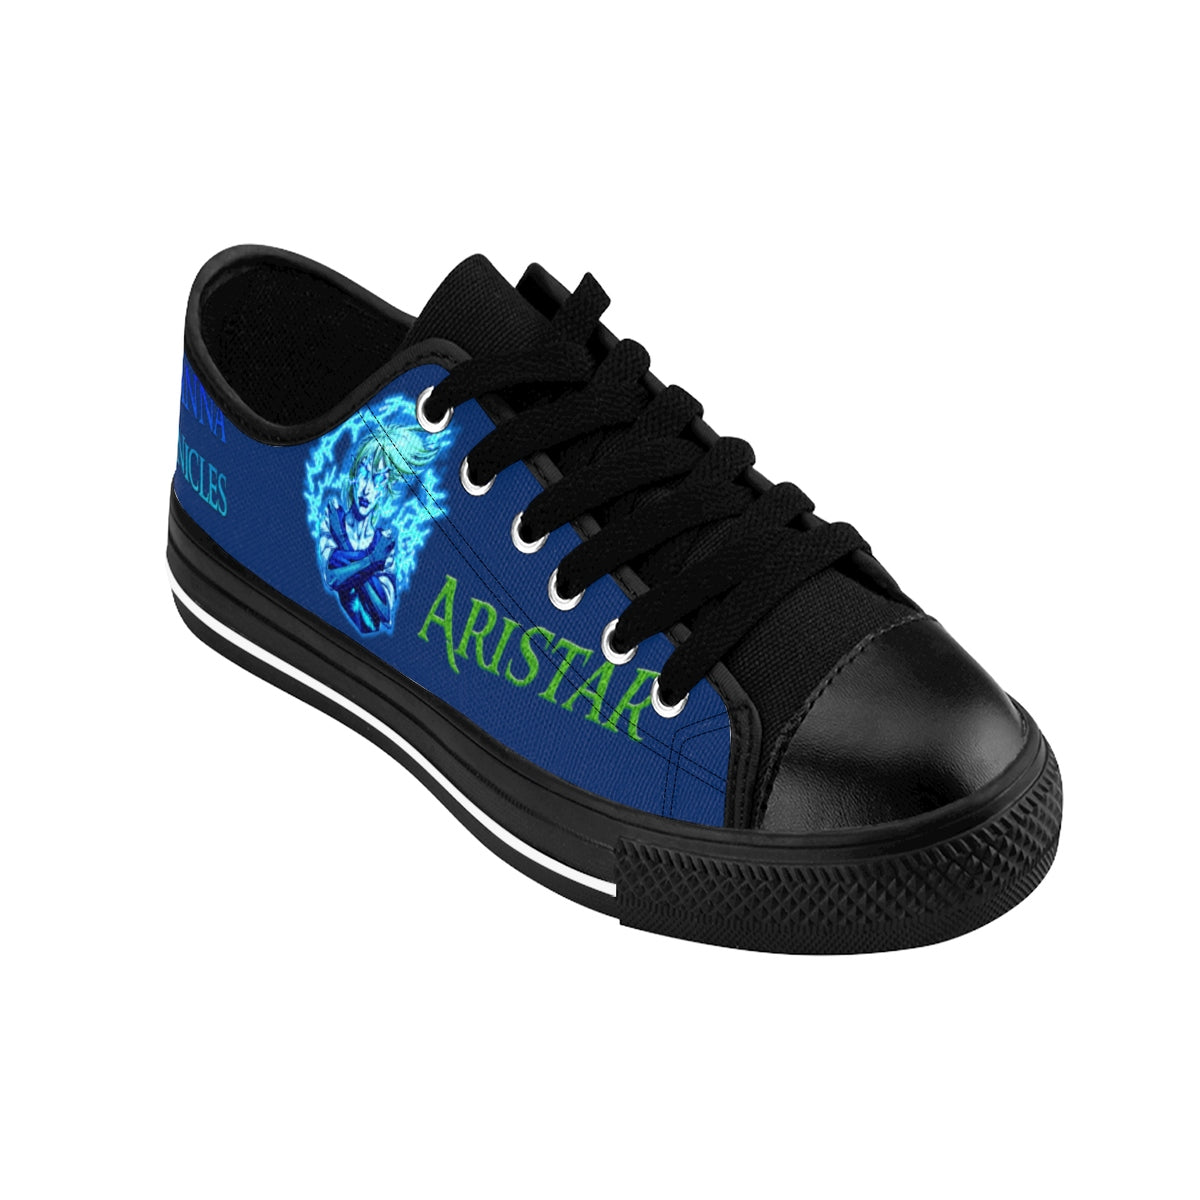 ARISTAR Men's Sneaker